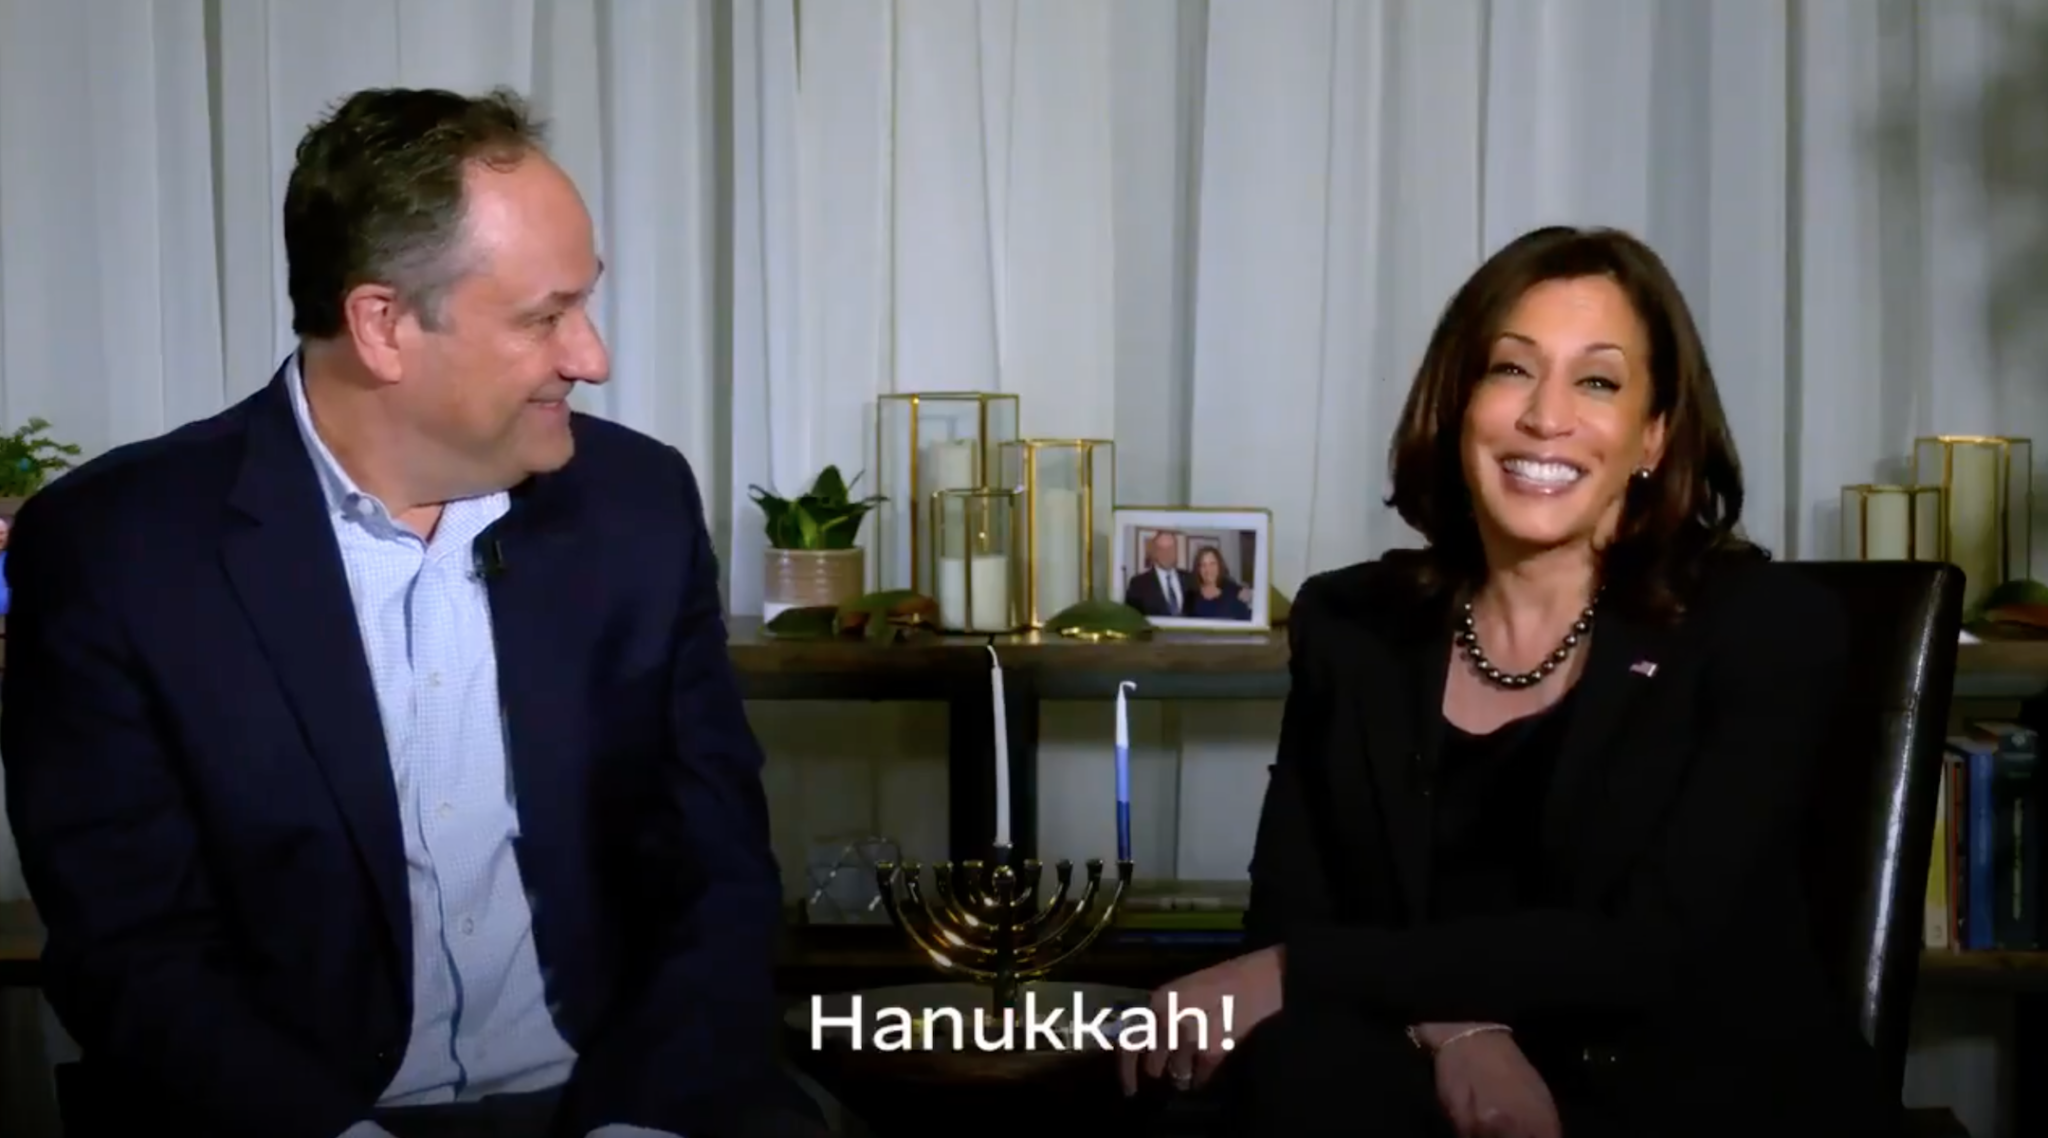 Vice President-elect Kamala Harris and husband Doug Emhoff send Hanukkah greetings in a video, Dec. 10, 2020. (Screenshot from Twitter)